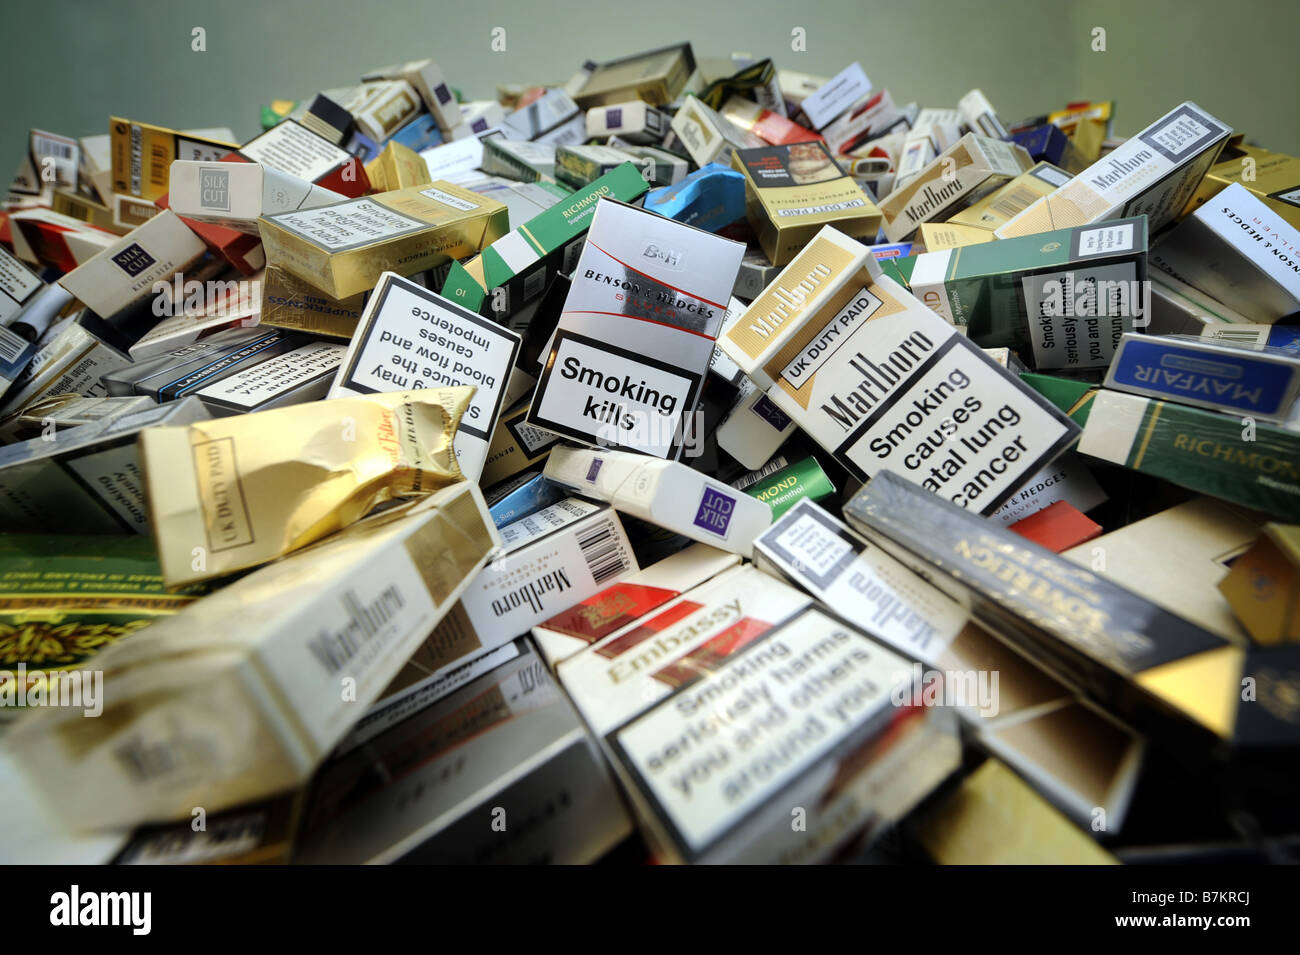 VARIOUS DISGARDED UK  CIGARETTE PACKETS SHOWING WARNING LABELS. - Stock Image